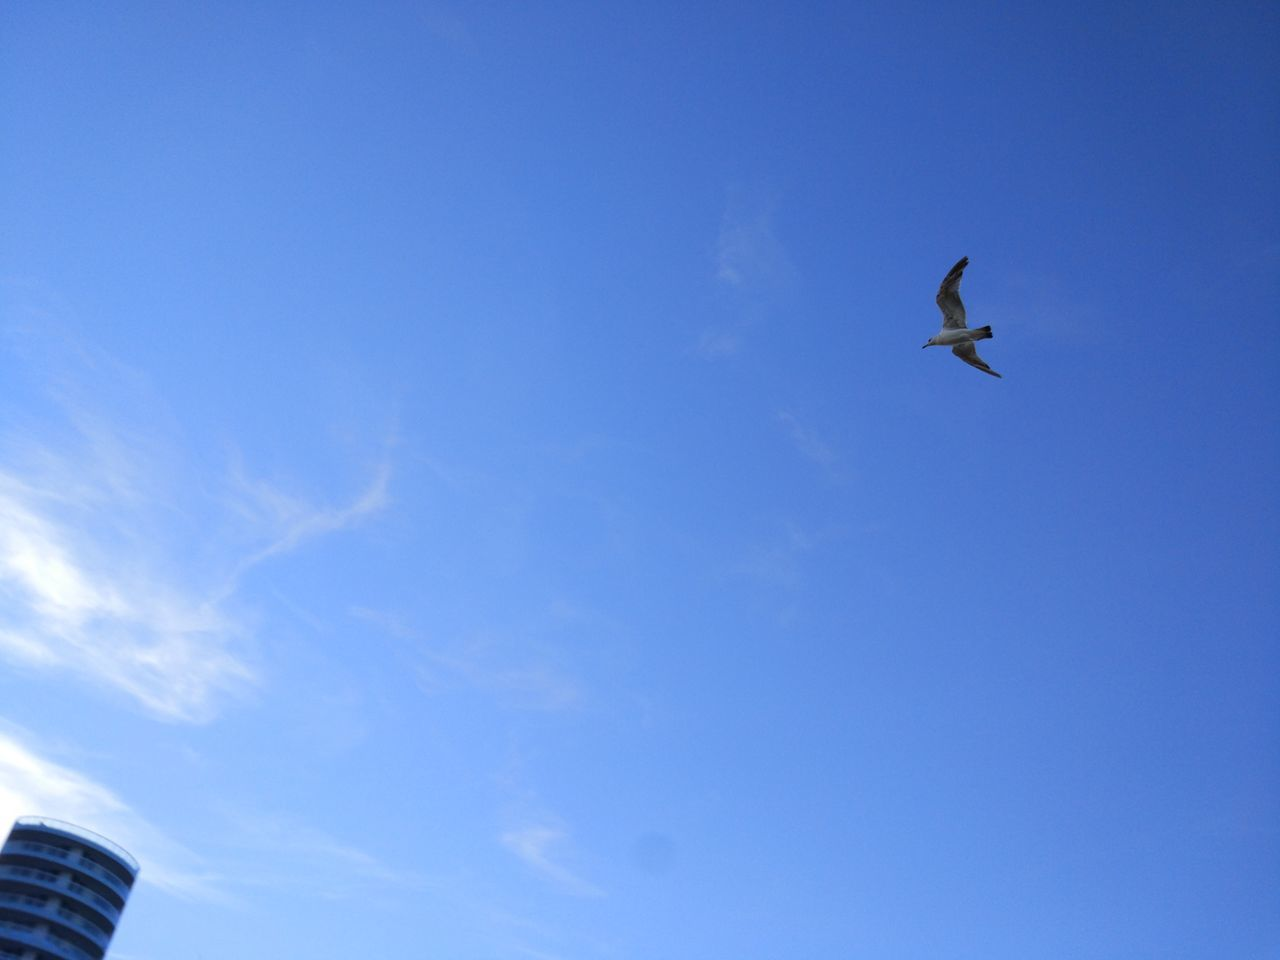 flying, low angle view, blue, mid-air, bird, day, sky, outdoors, clear sky, no people, nature, spread wings, animal themes